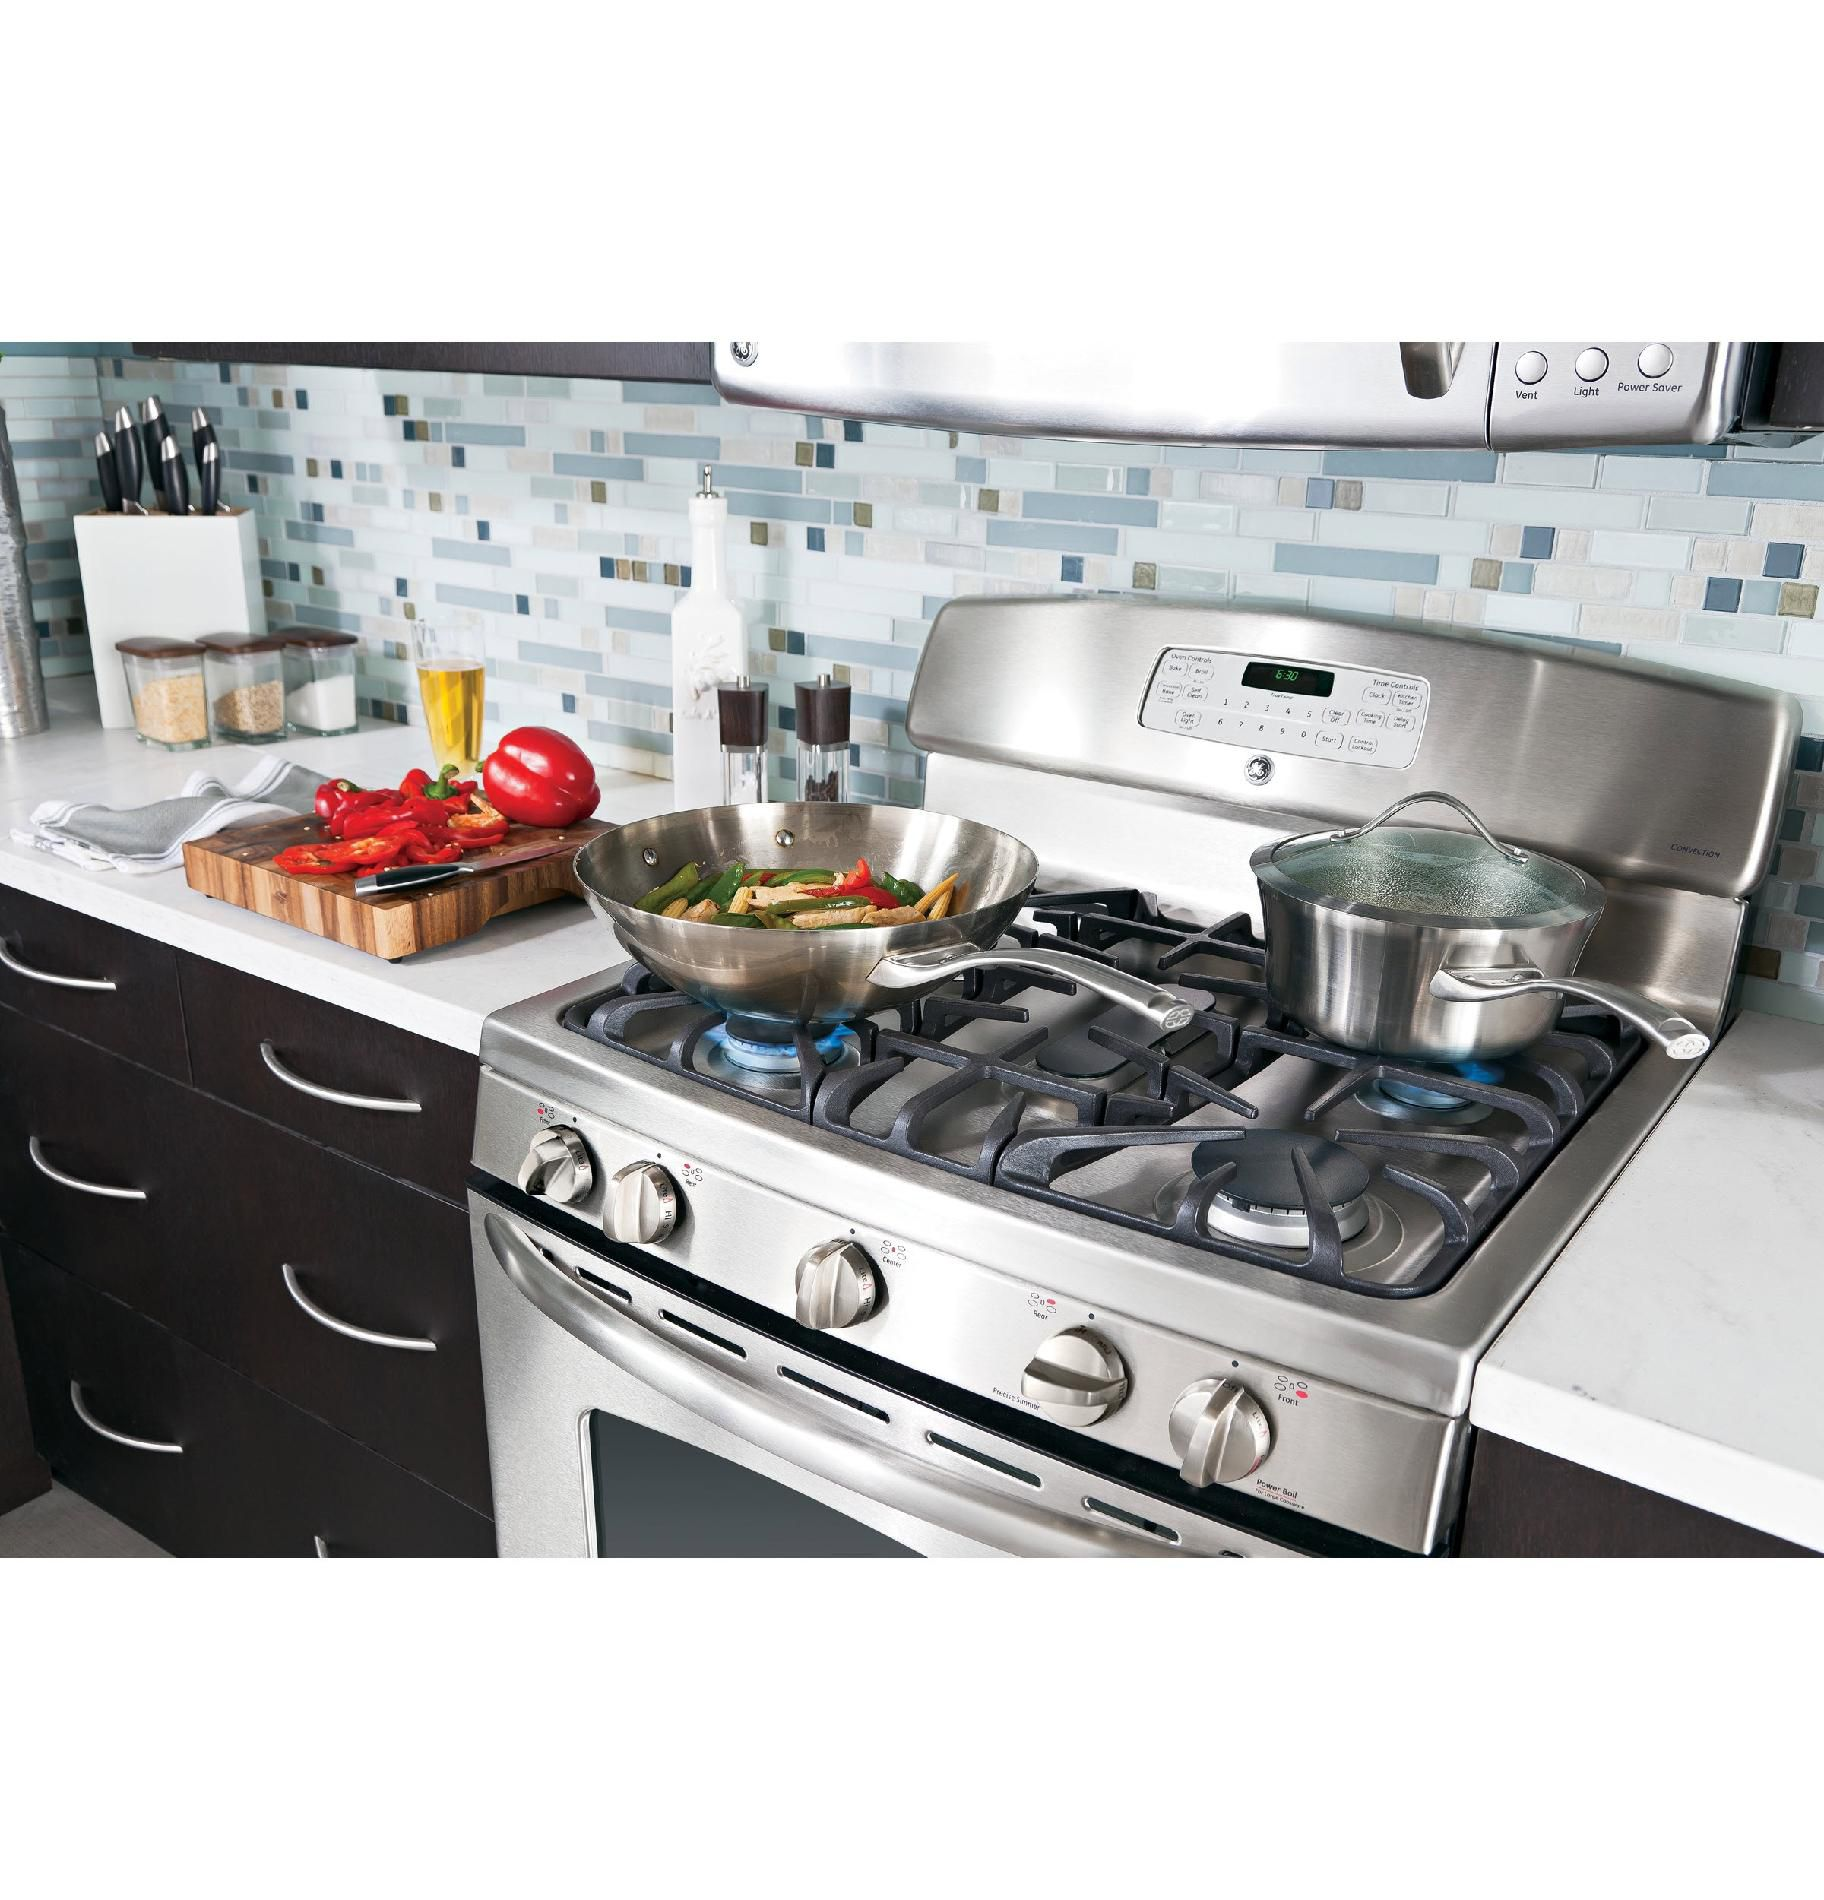 GE Appliances 5.0 cu. ft. Freestanding Gas Range w/ Convection - Stainless Steel